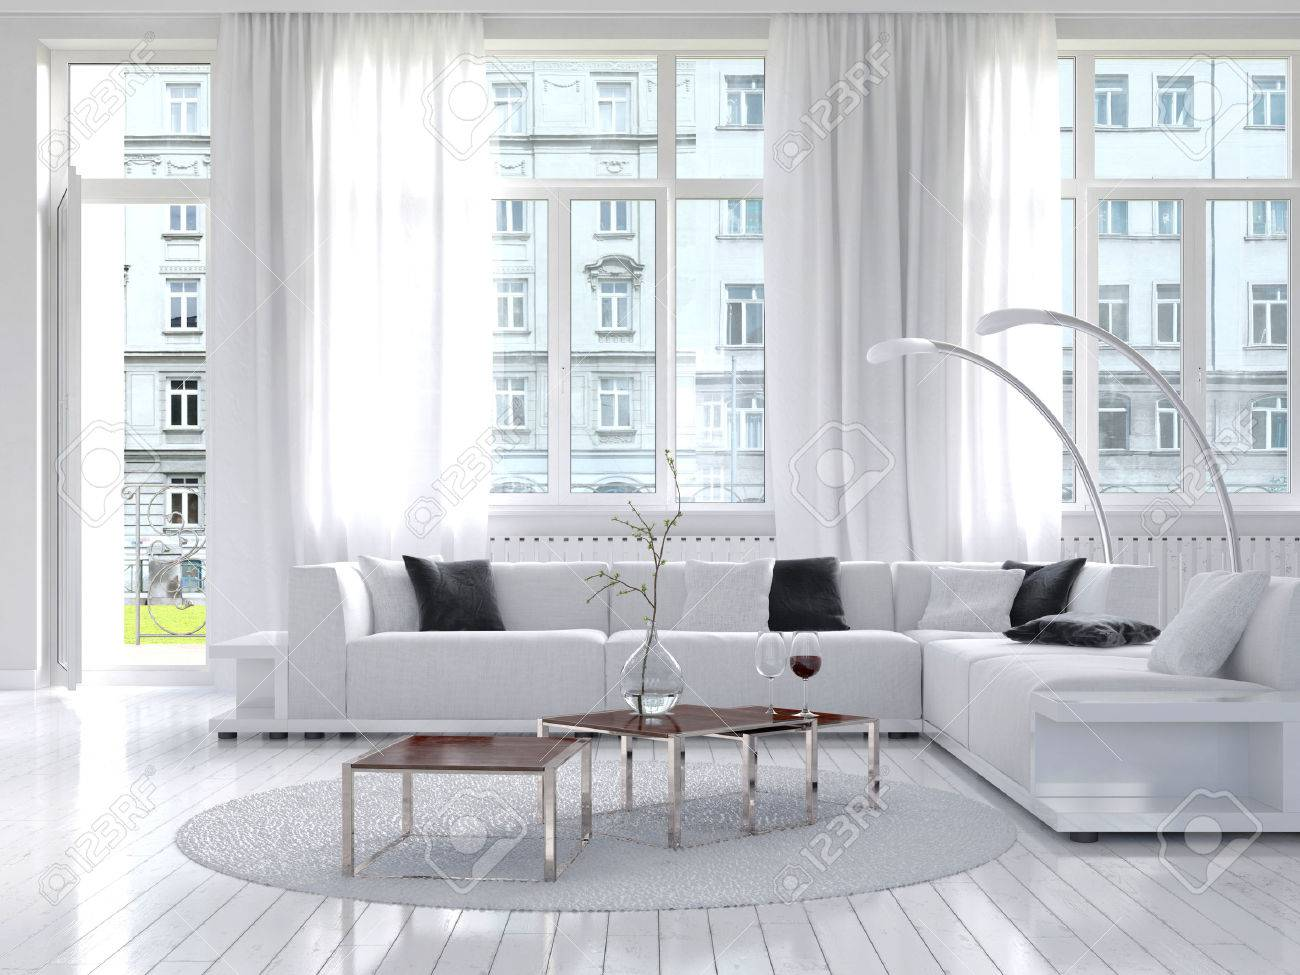 Picture of amazing white loft living room interior Stock Photo - 28283567